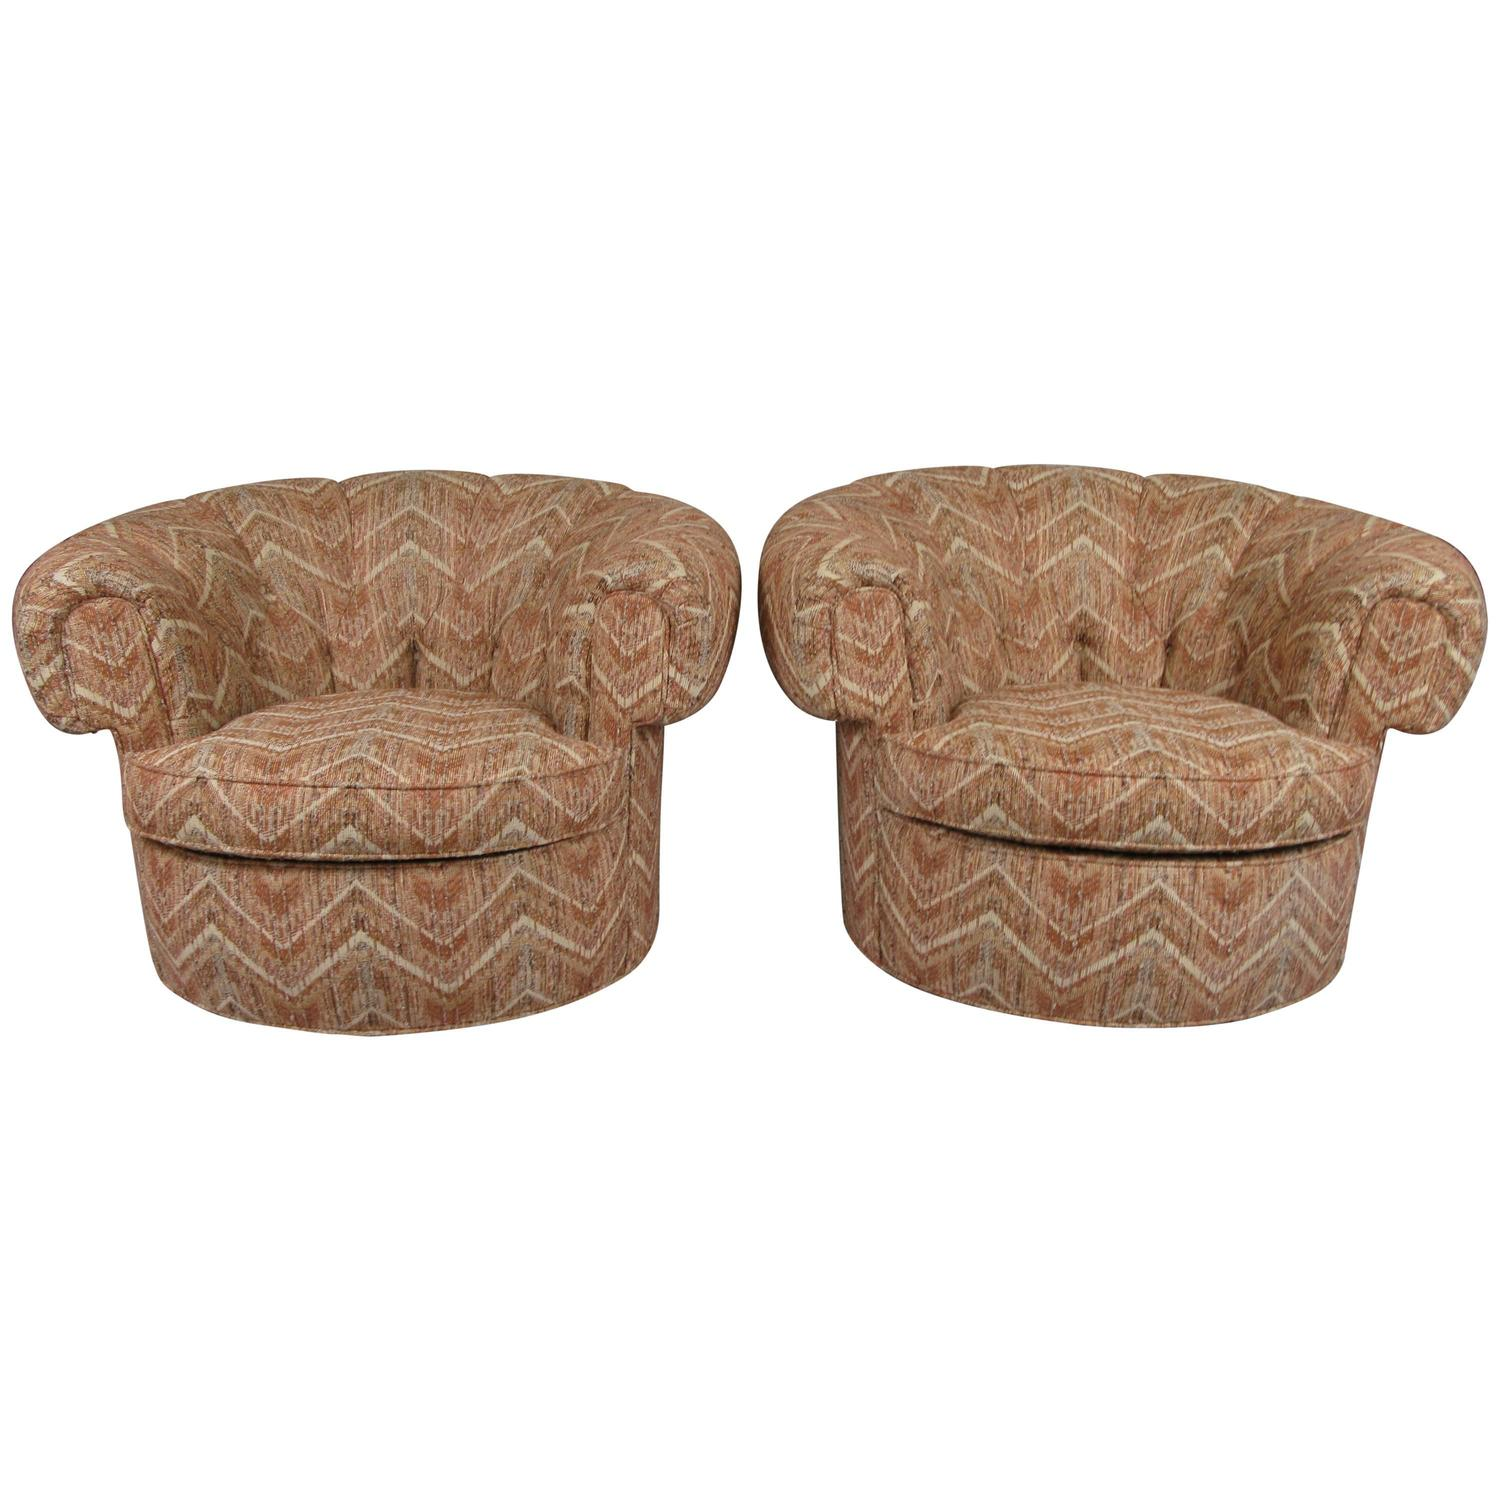 Pair of 1950s Circular Rolled Back Lounge Chairs For Sale at 1stdibs